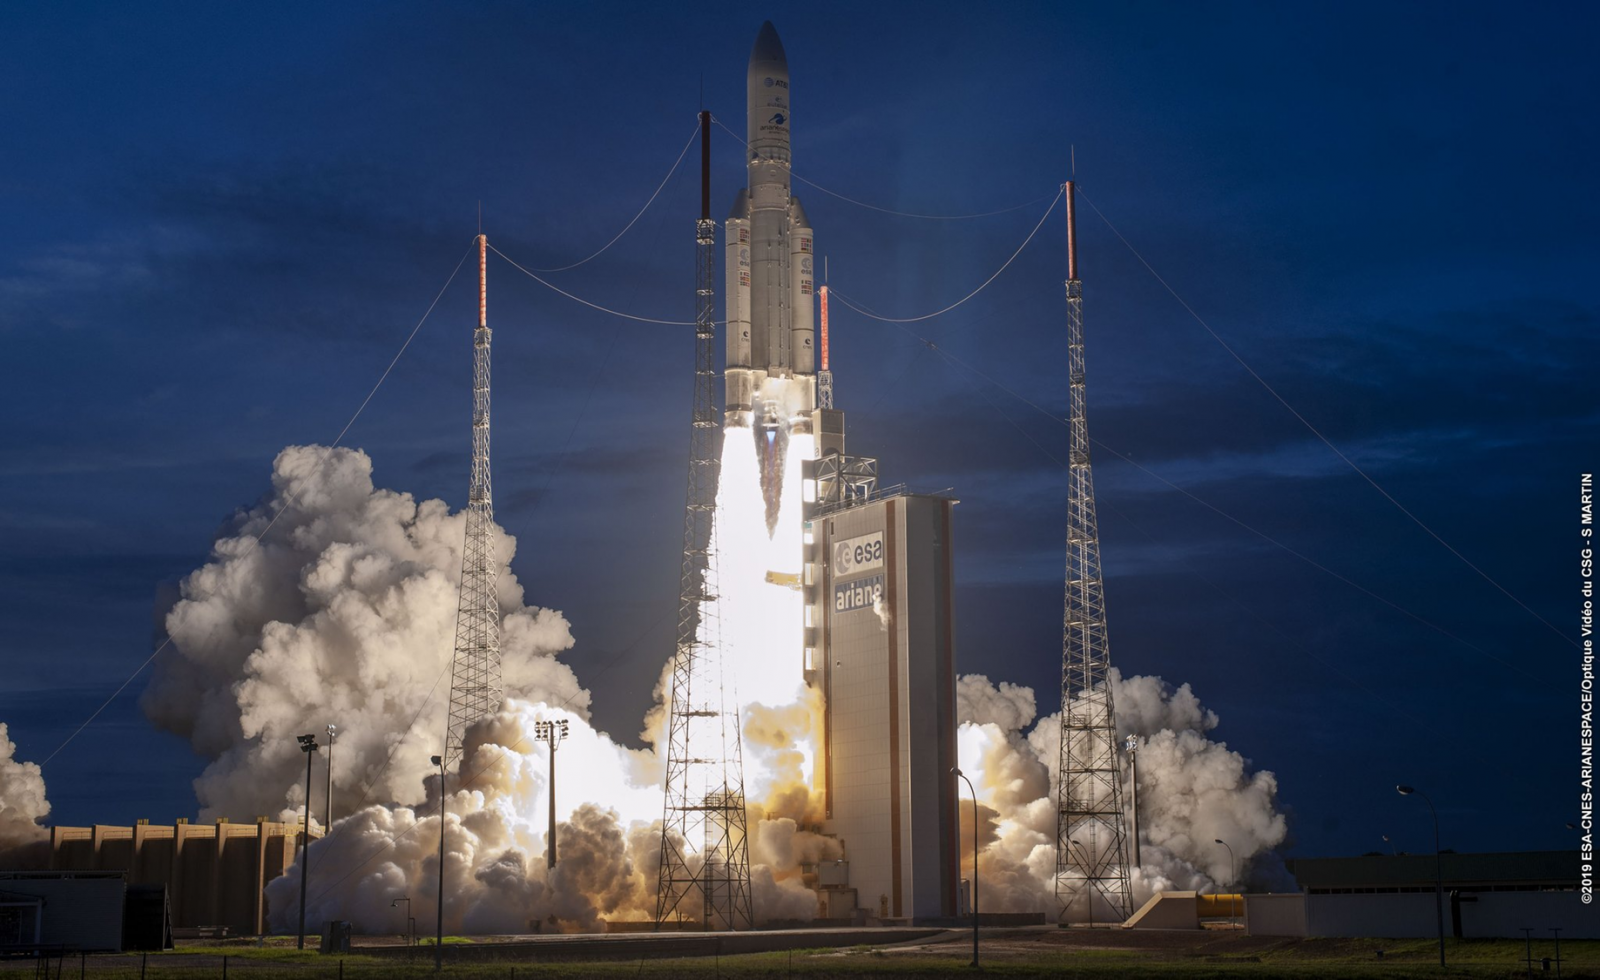 Arianespace's AV248 mission lifts off atop an Ariane 5 ECA rocket on Thursday, June 19, 2019 with its payload of the AT&T T-16 EUTELSAT 7C communications satellites. Photo Credit: Arianespace